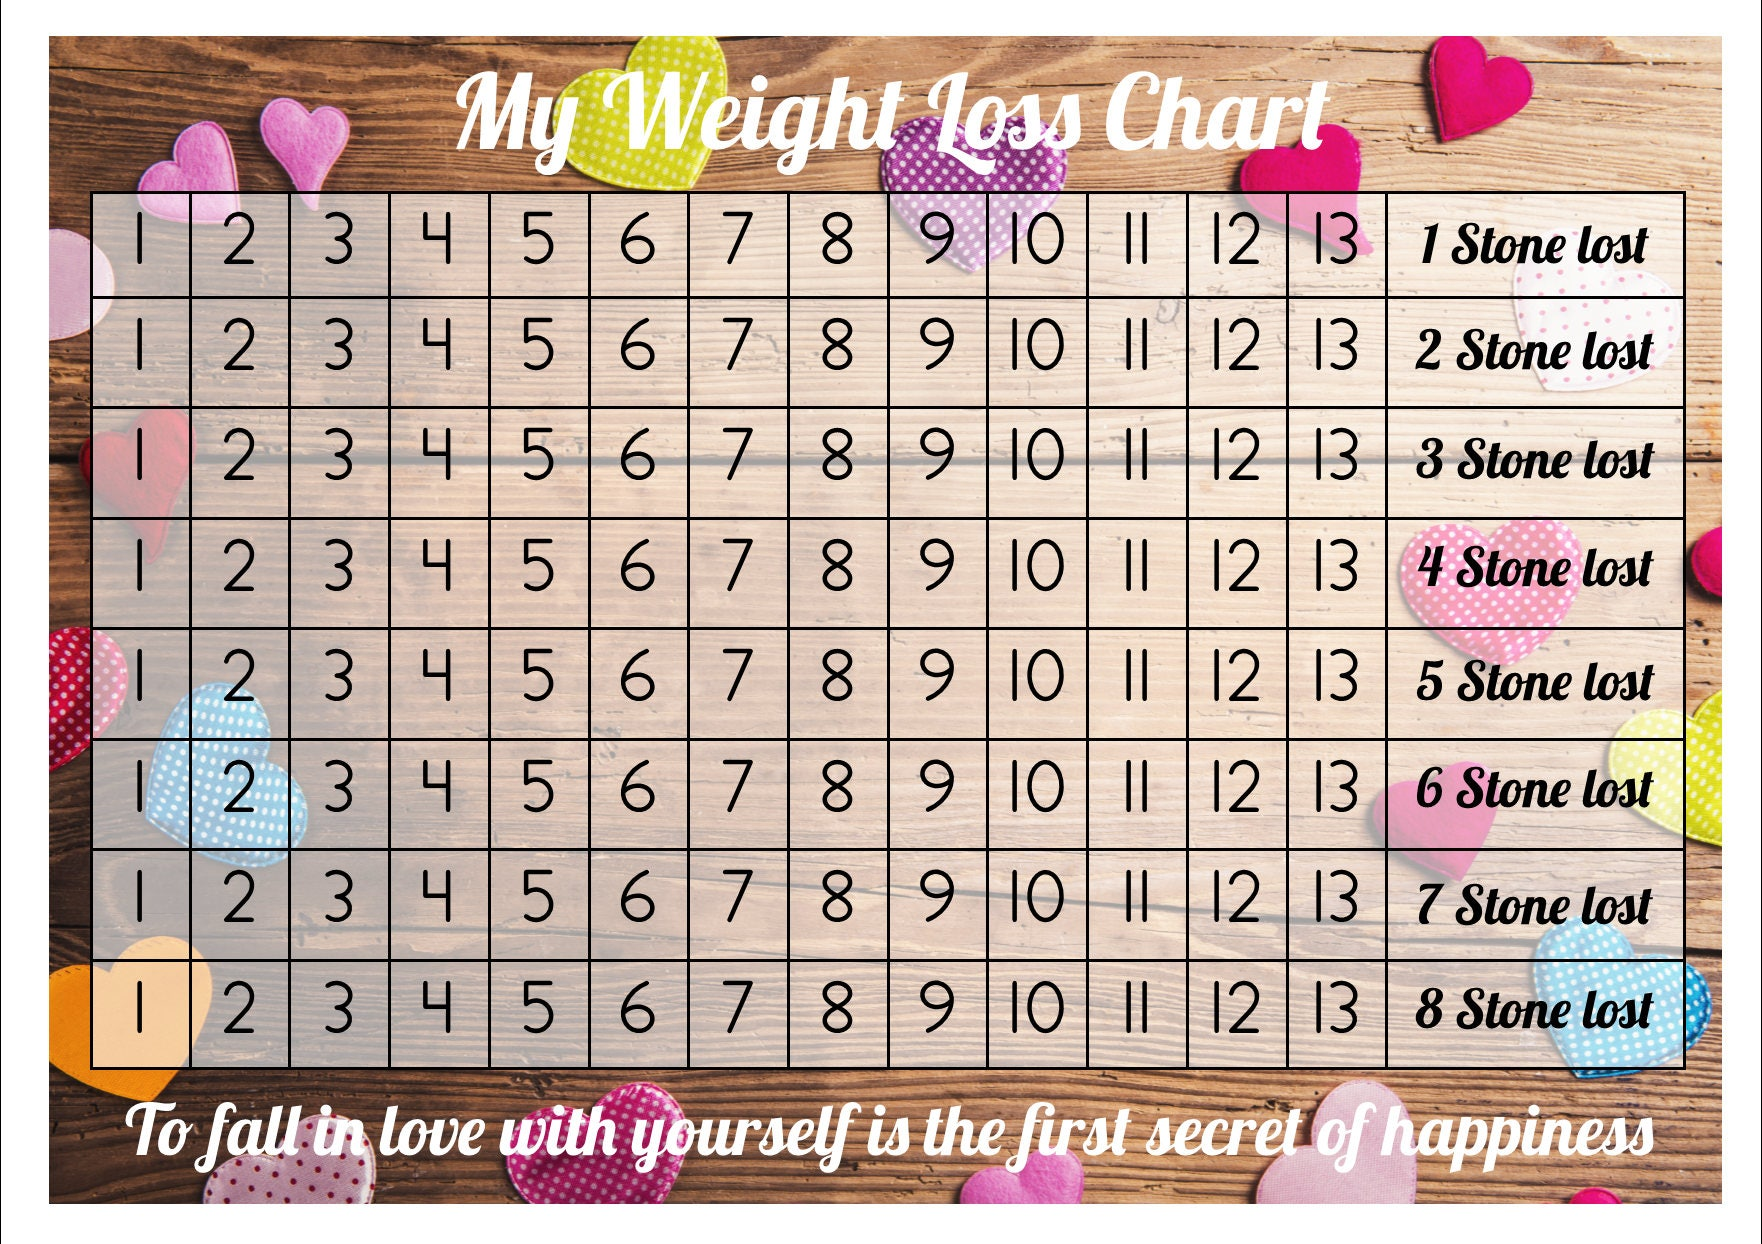 Weight loss chart tracker 8 stone comes with star description weight loss chart tracker nvjuhfo Gallery